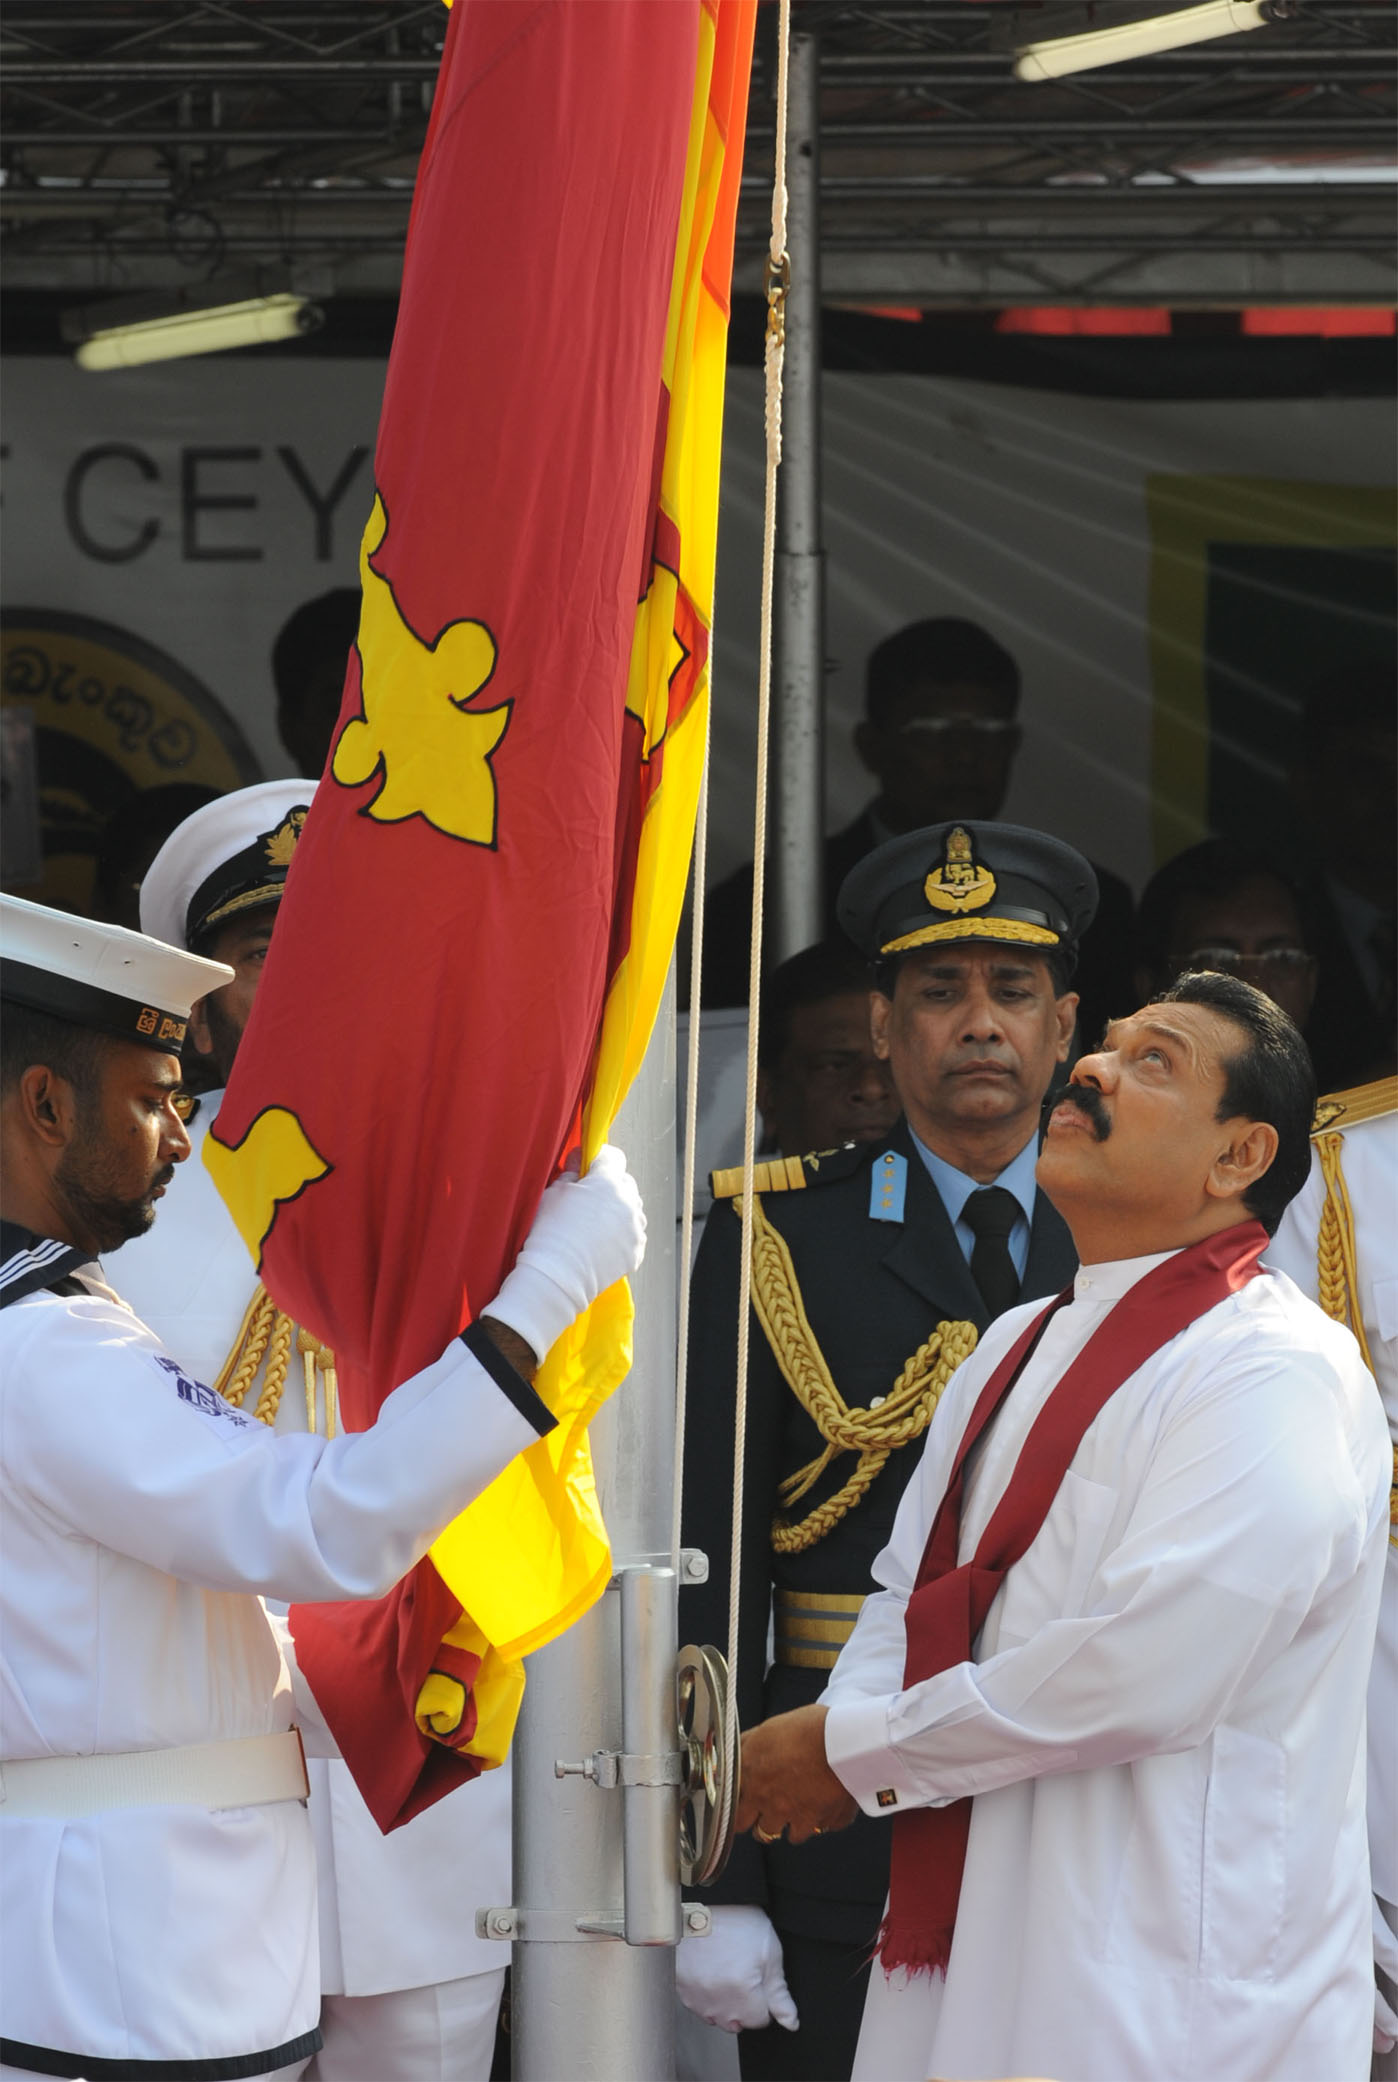 Sri Lankan President Mahinda Rajapakse hoists the national flag at a tightly-guarded Independence Day function in the capital Colombo. He has vowed to crush Tamil Tiger separatists by the end of the year.